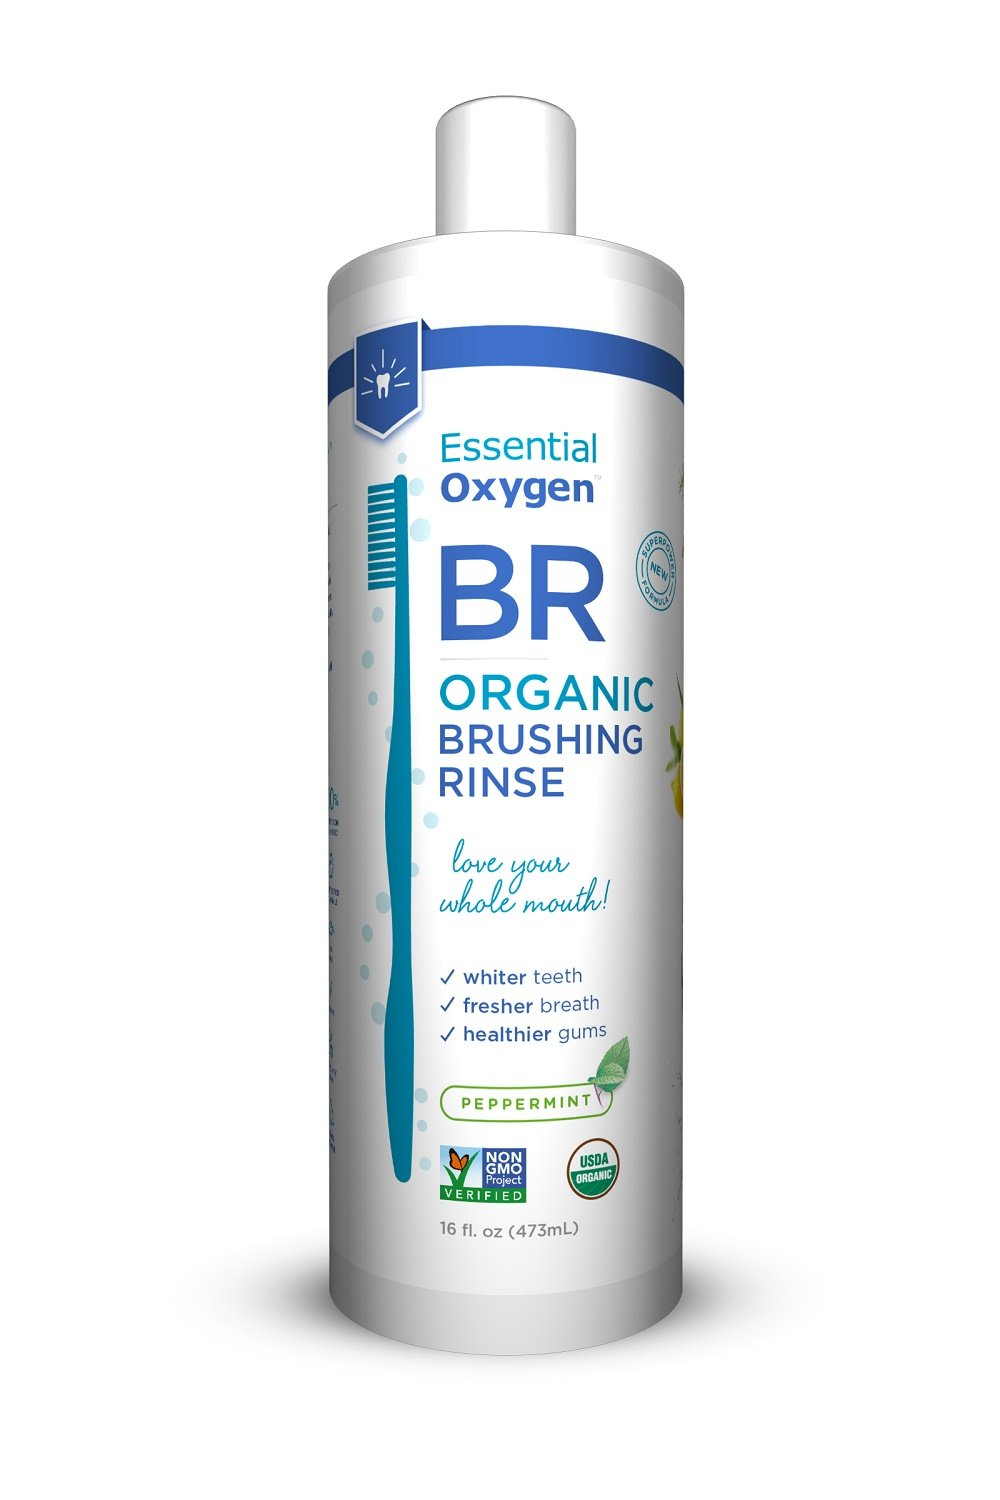 Essential Oxygen Organic Brushing Rinse Toothpaste Mouthwash for Whiter Teeth, Fresher Breath, and Healthier Gums, Peppermint by Brushing Rinse S0565820N